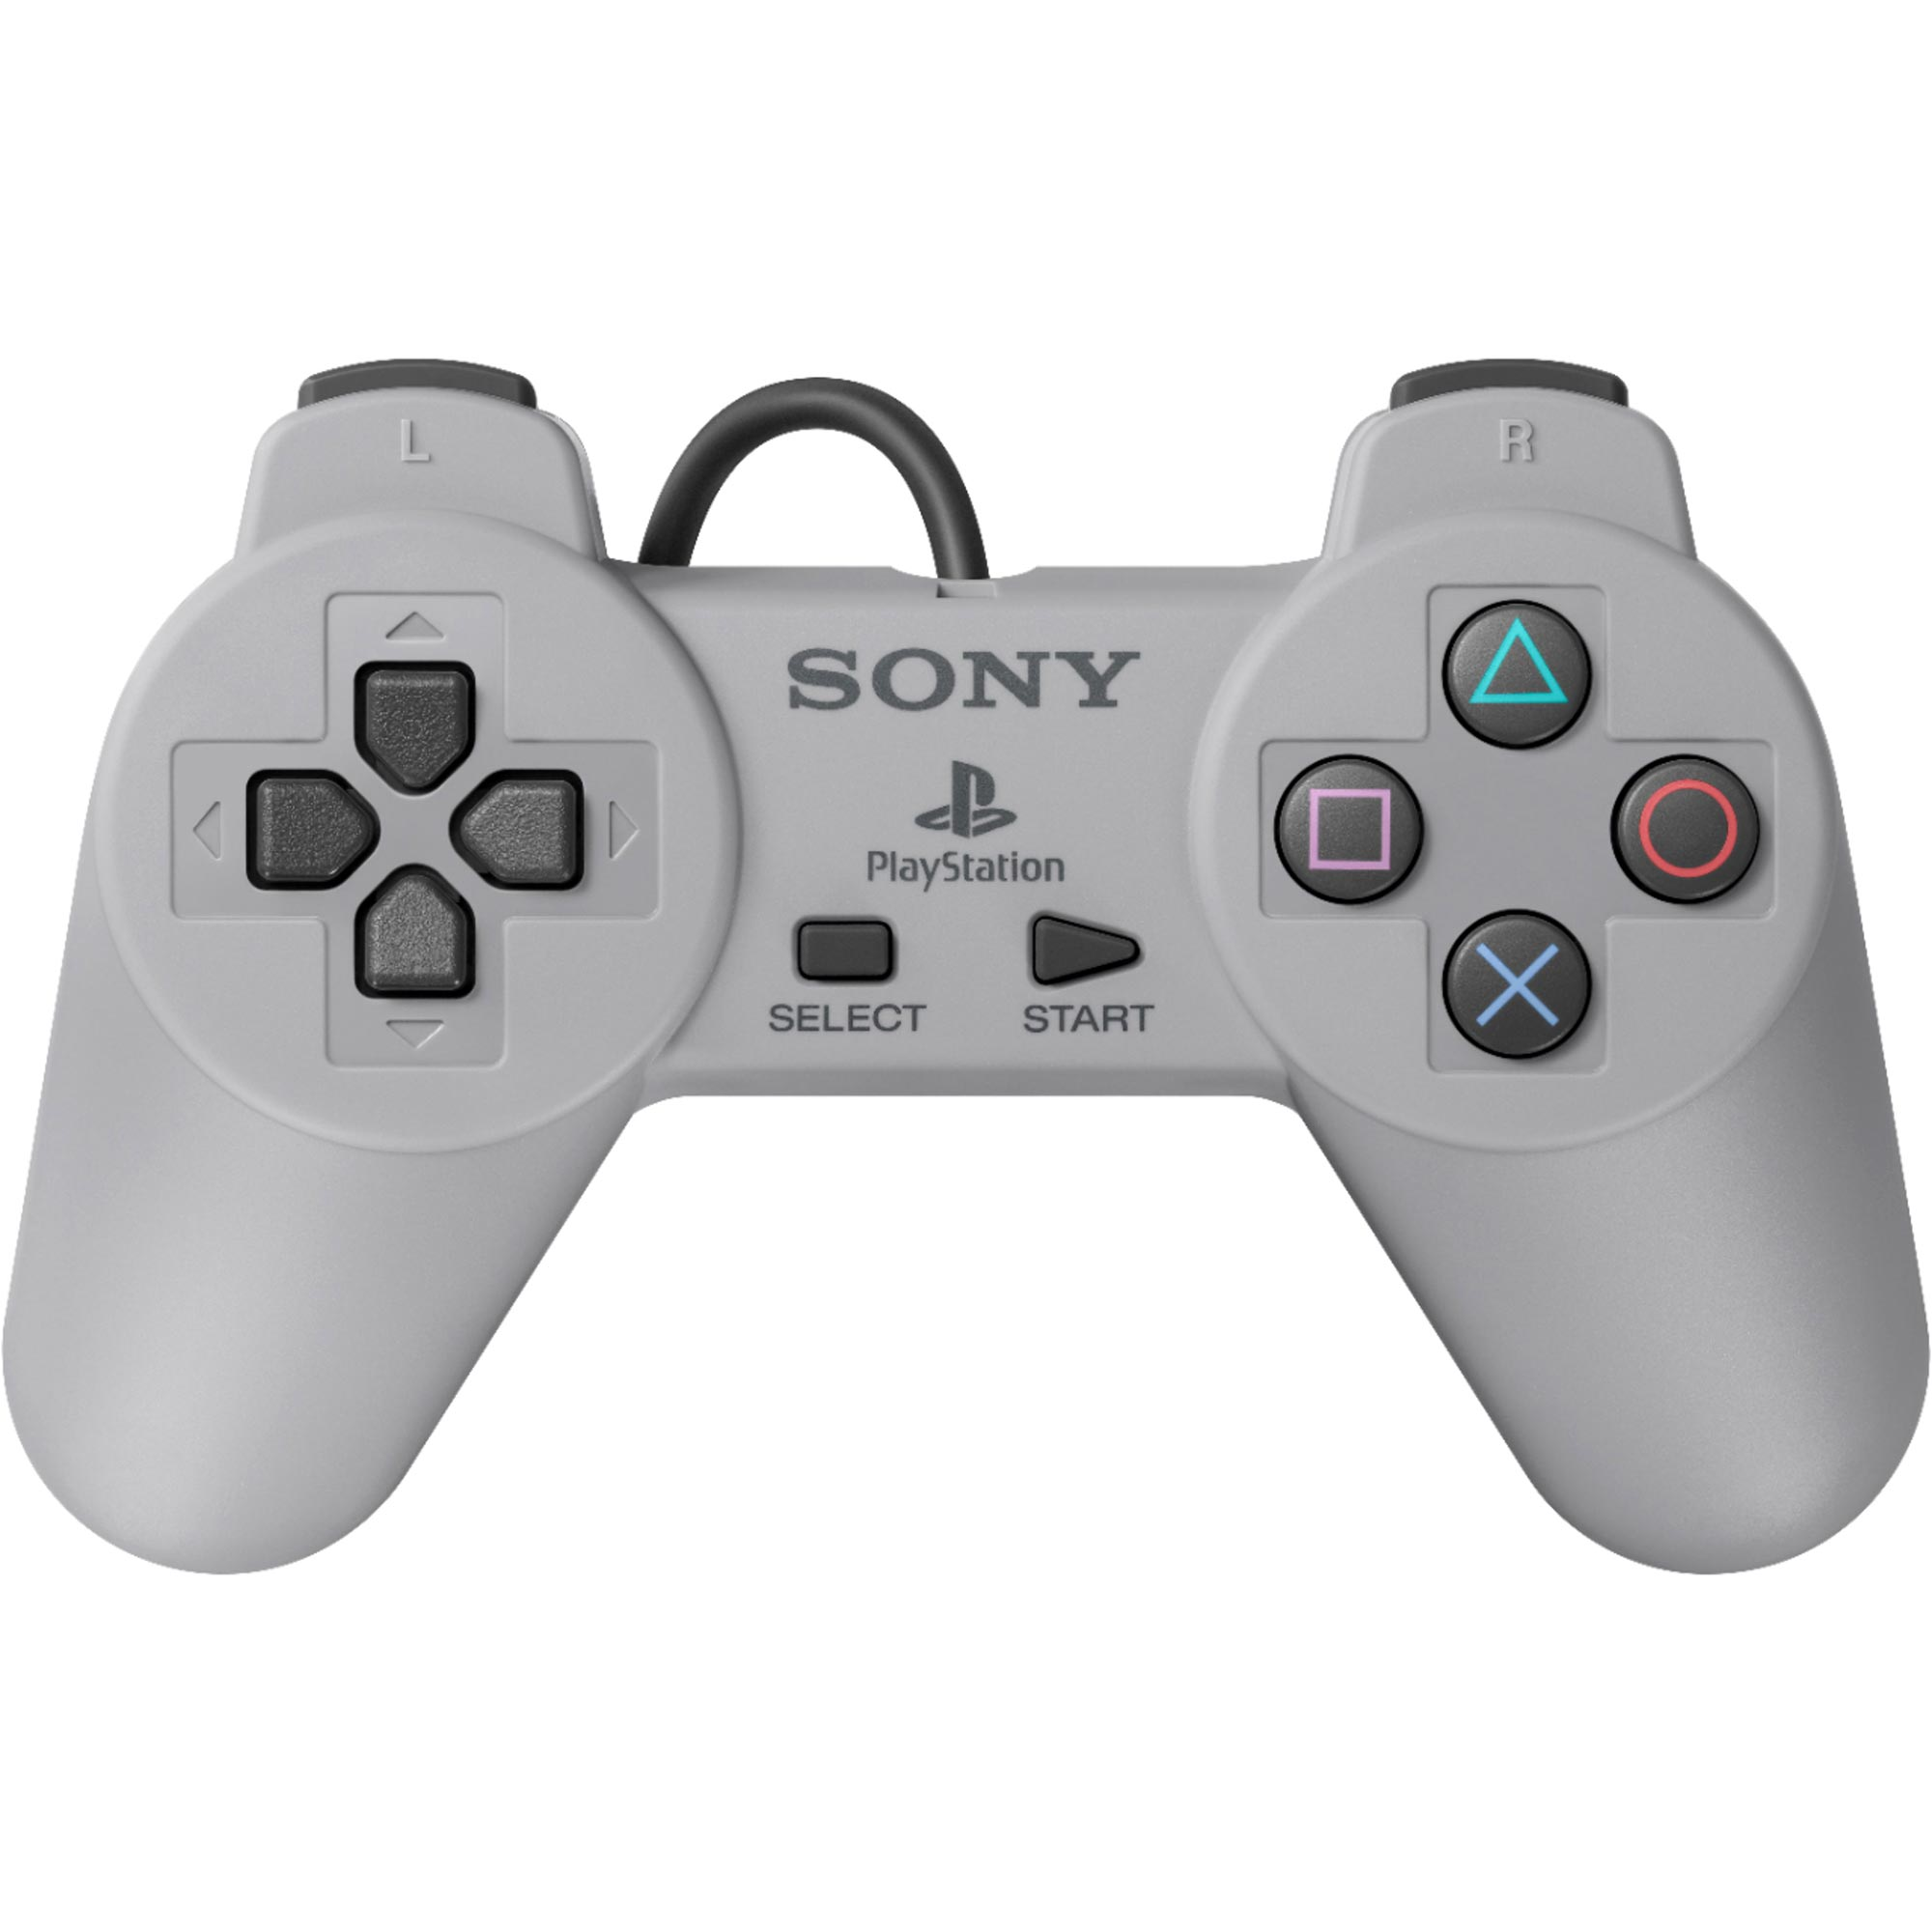 sony playstation classic console. Black Bedroom Furniture Sets. Home Design Ideas